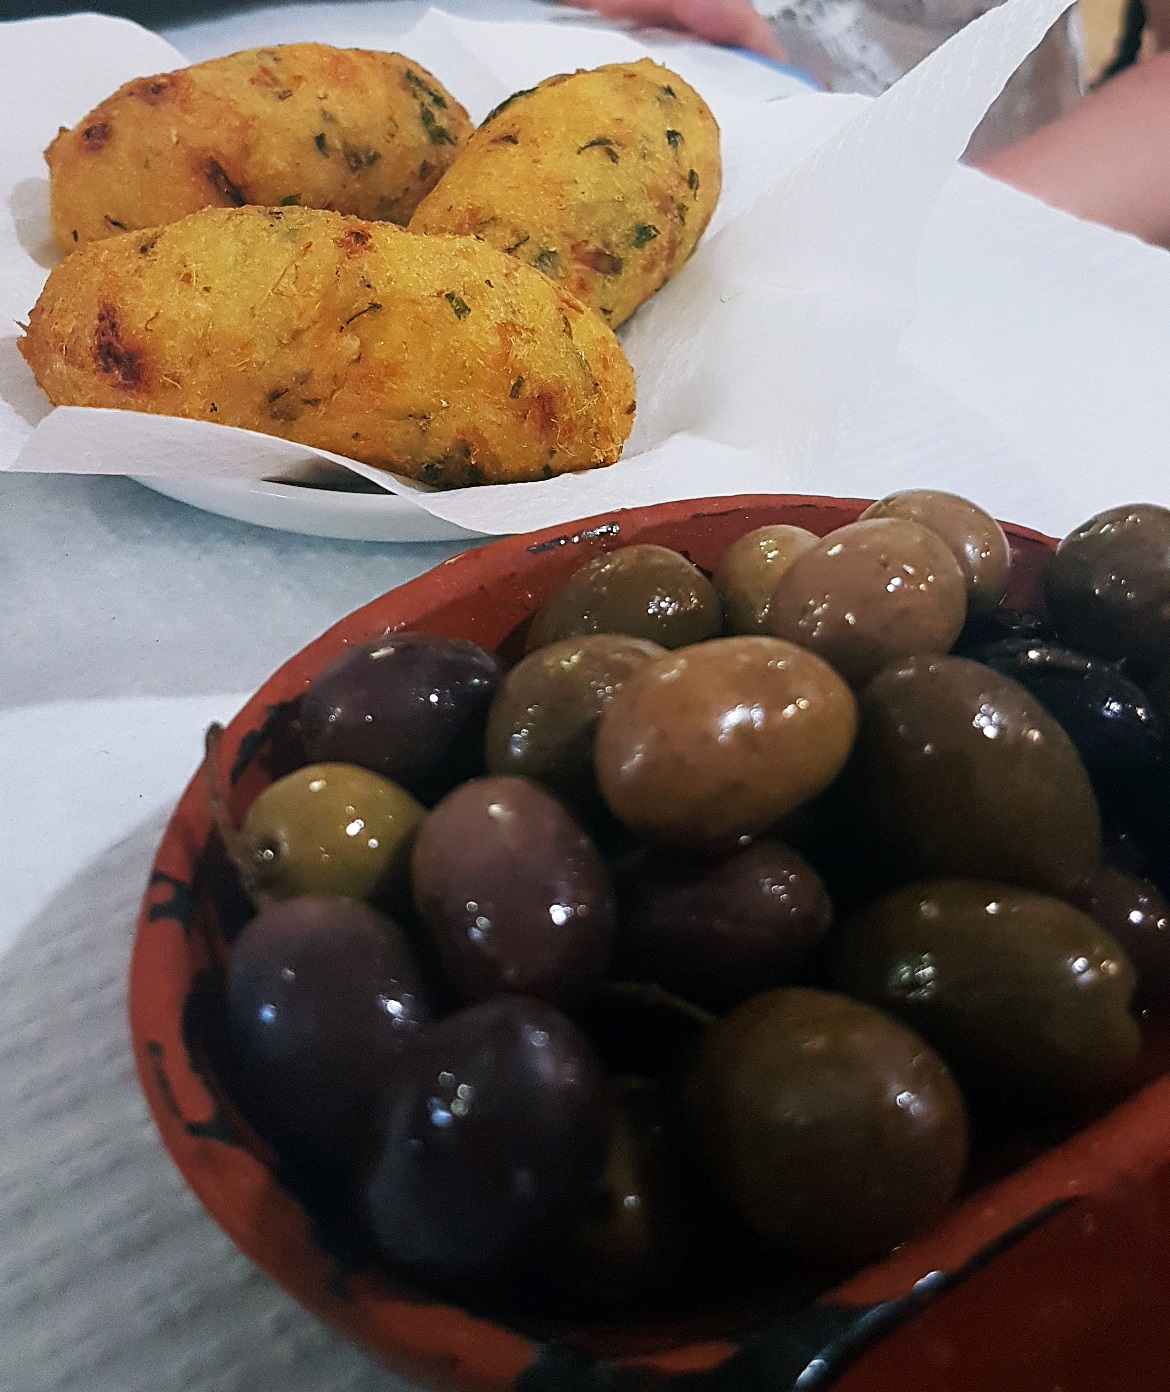 Olives and cod fishcakes at Restaurant de Calçada - Food and Drink in Lisbon, review by BeckyBecky Blogs